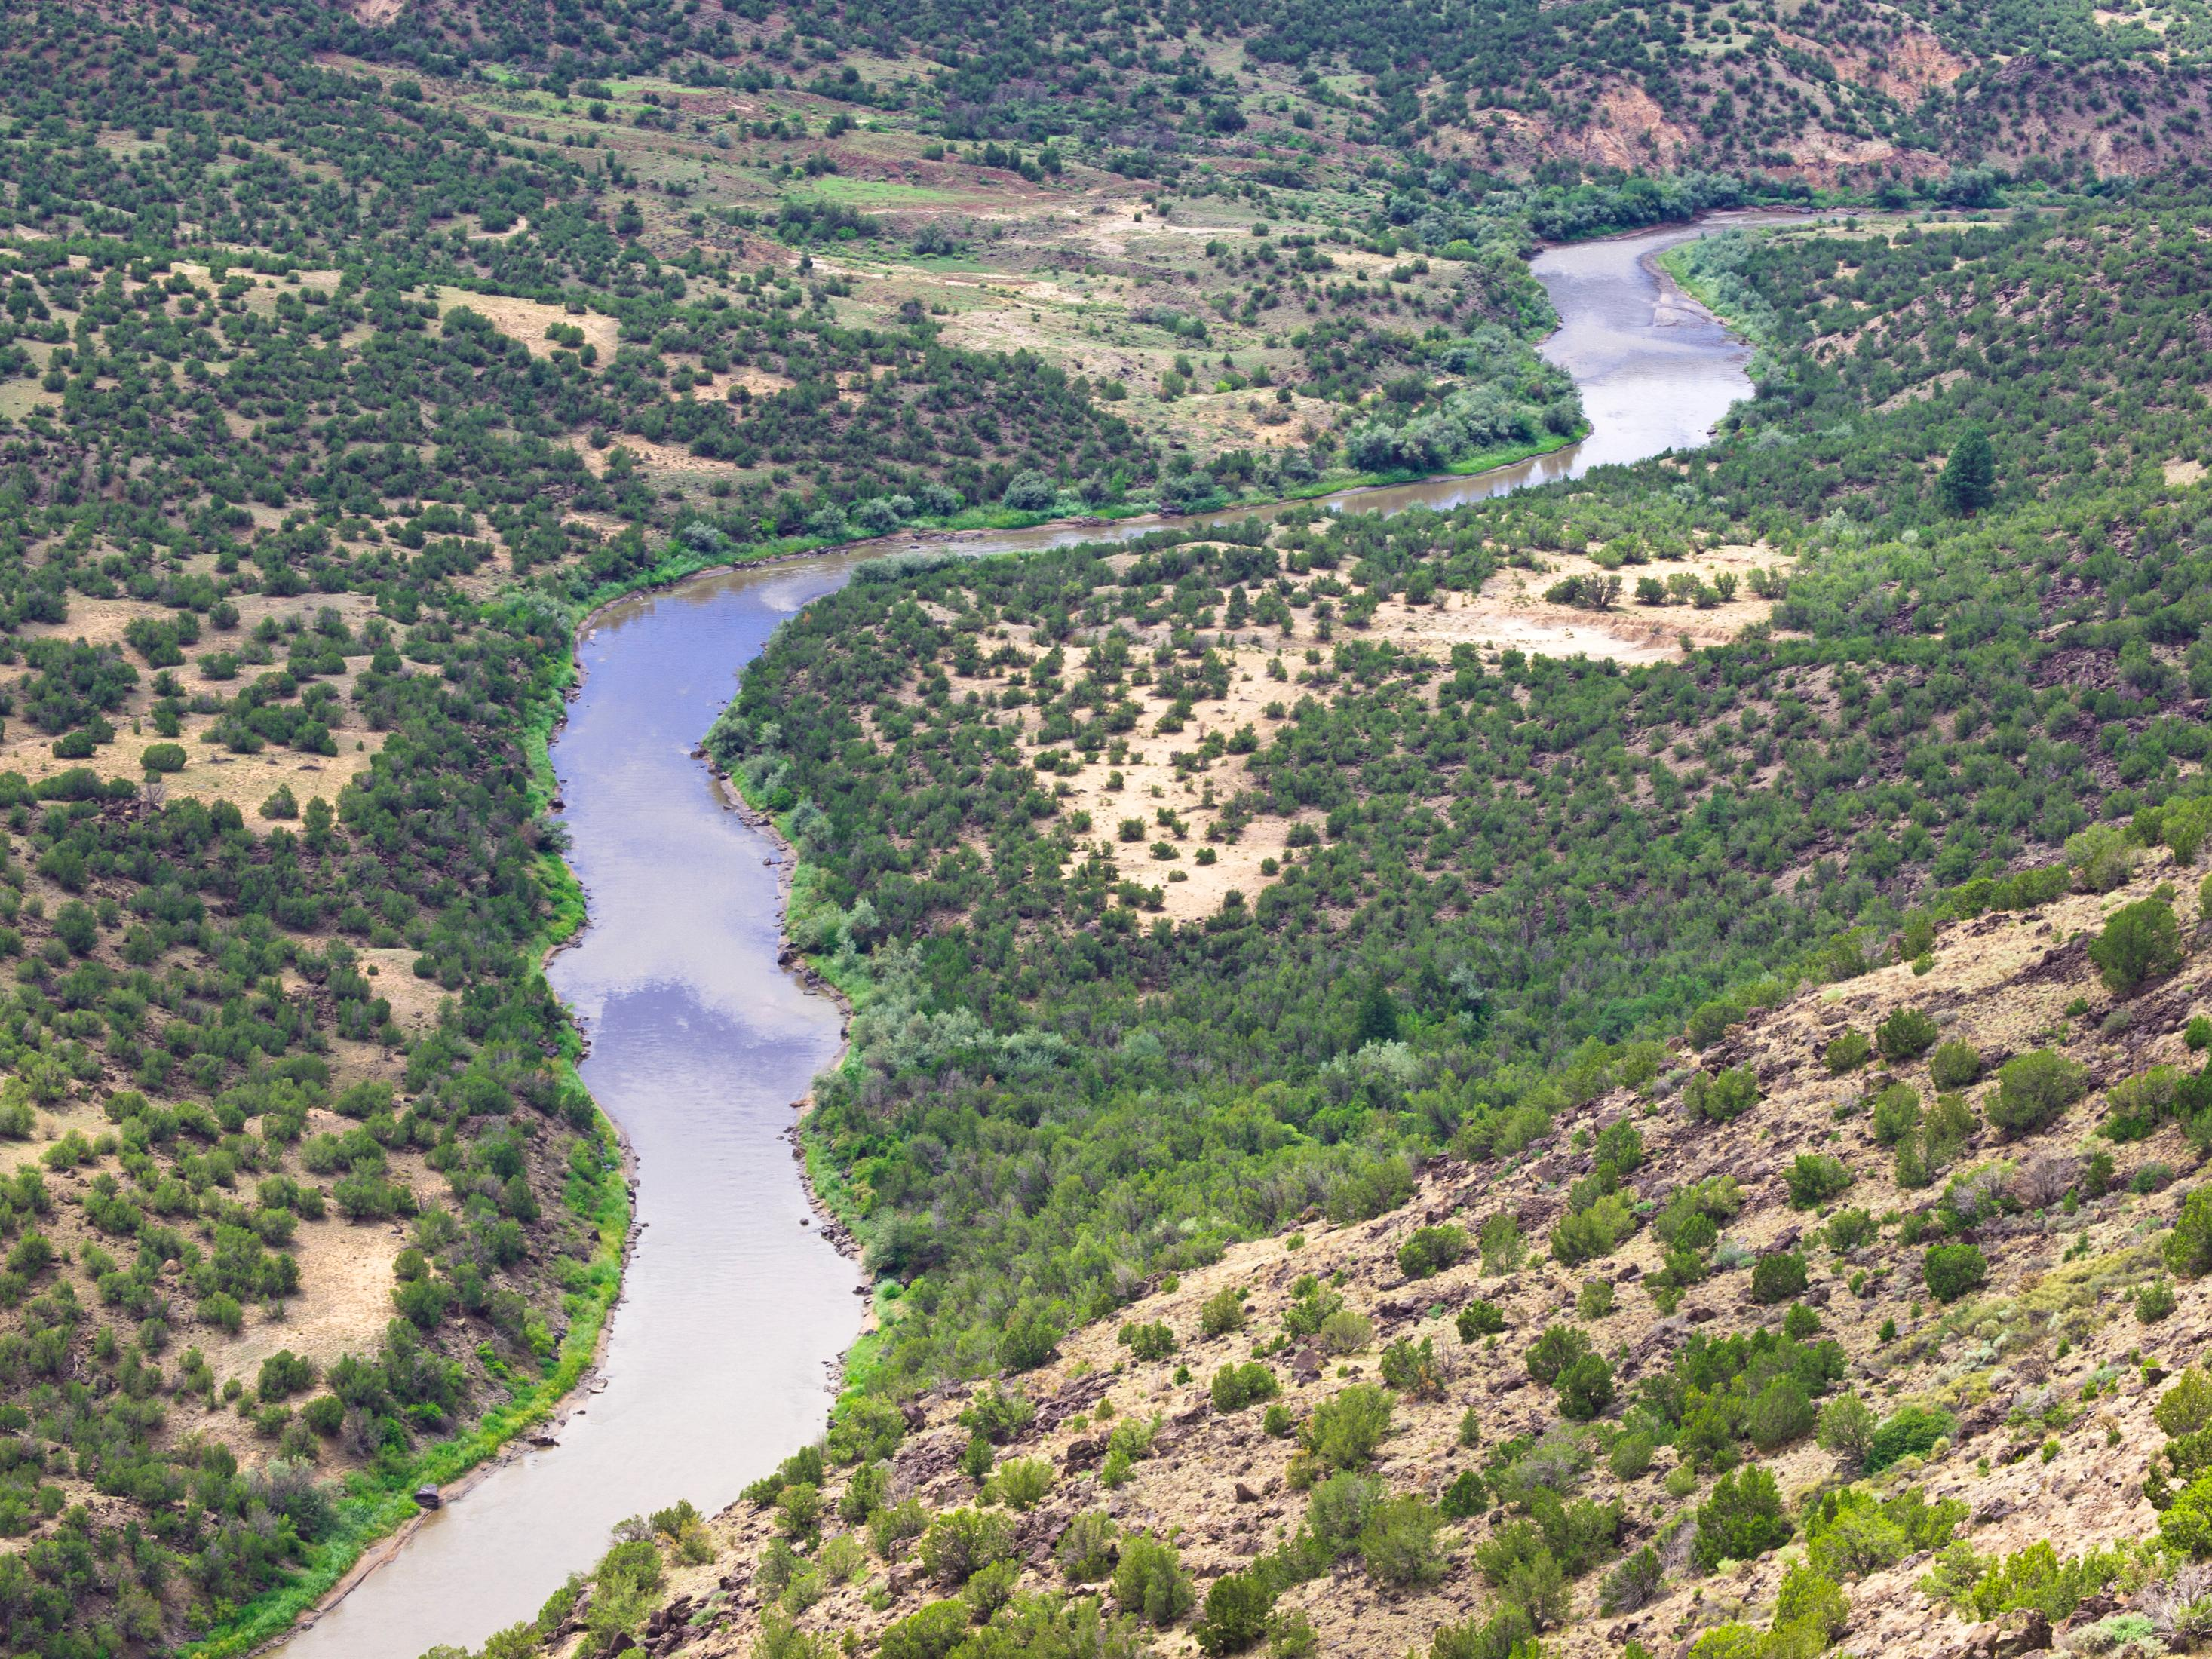 Venture outdoors to the Orilla Verde Recreation Area along the Rio Grande.